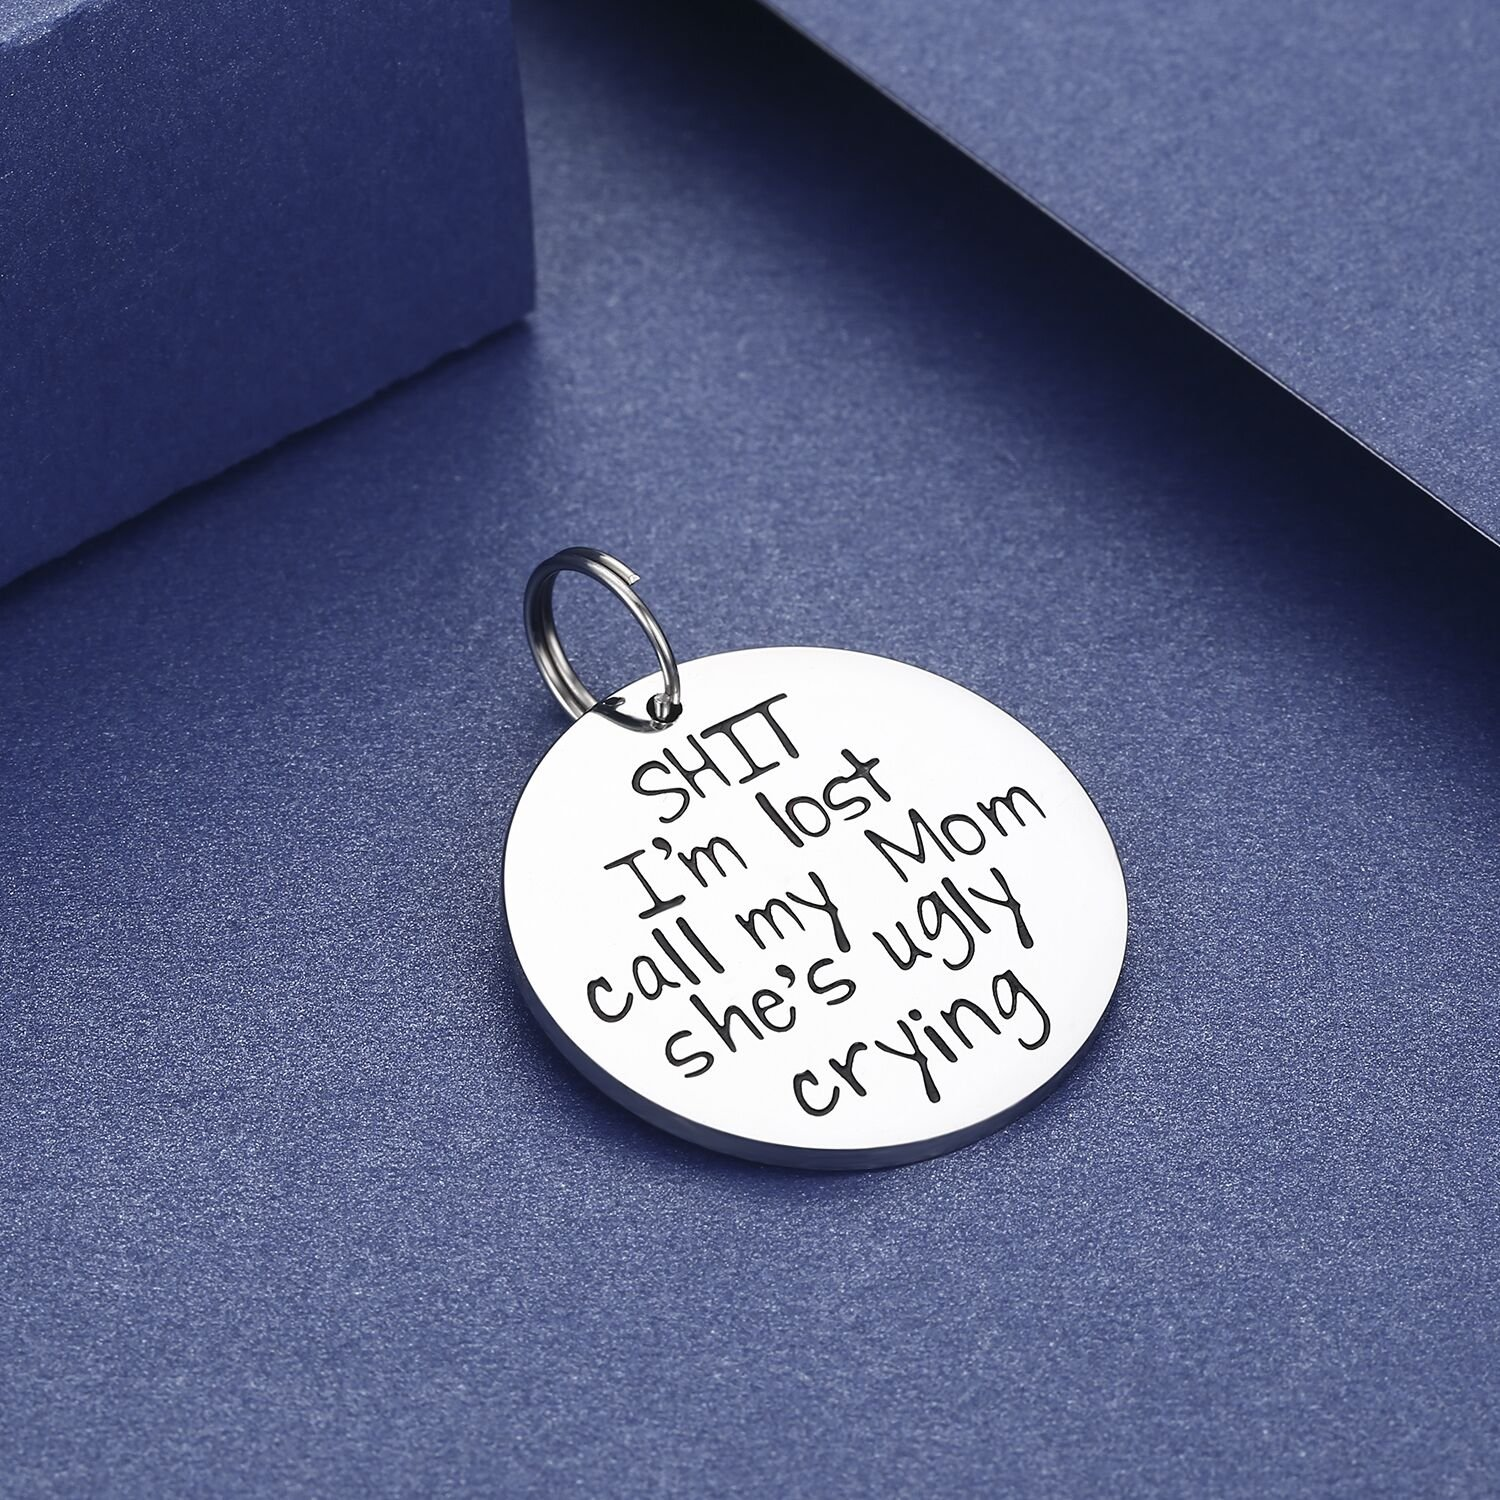 cj m funny pet tag funny dog tag stainless steel pet tags dog